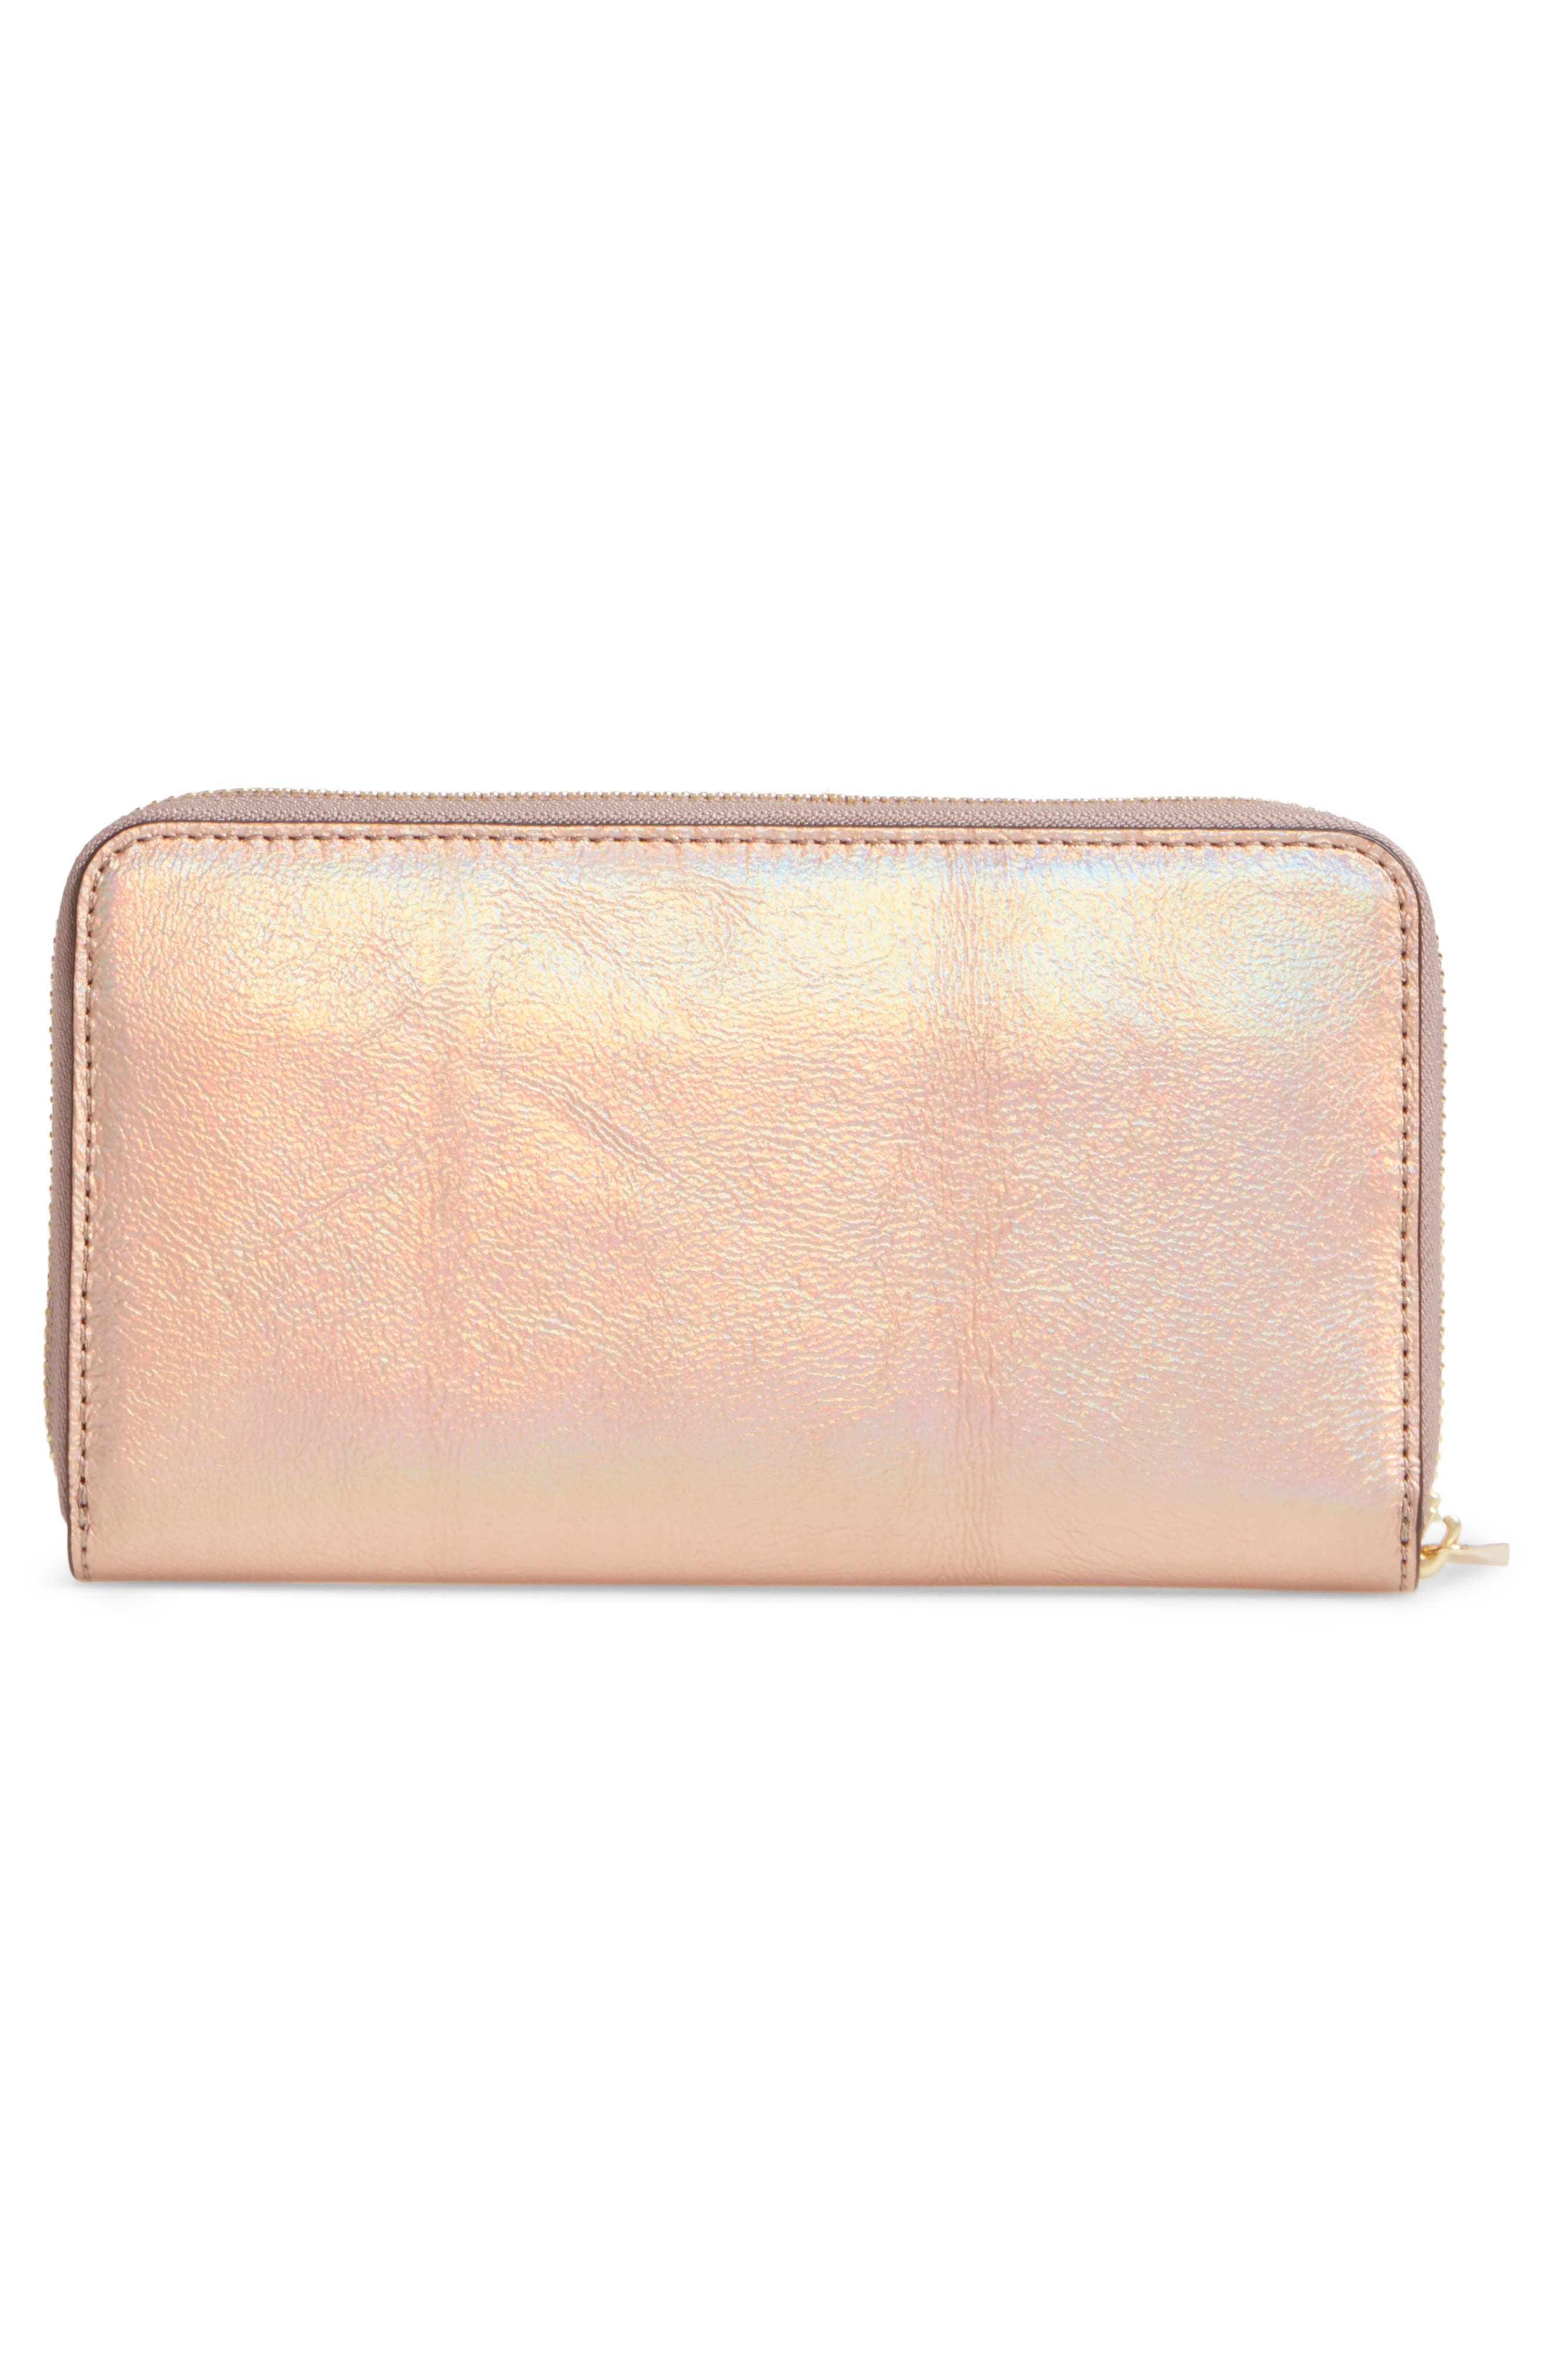 Robinson Metallic Leather Continental Wallet,                             Alternate thumbnail 4, color,                             Rose Gold